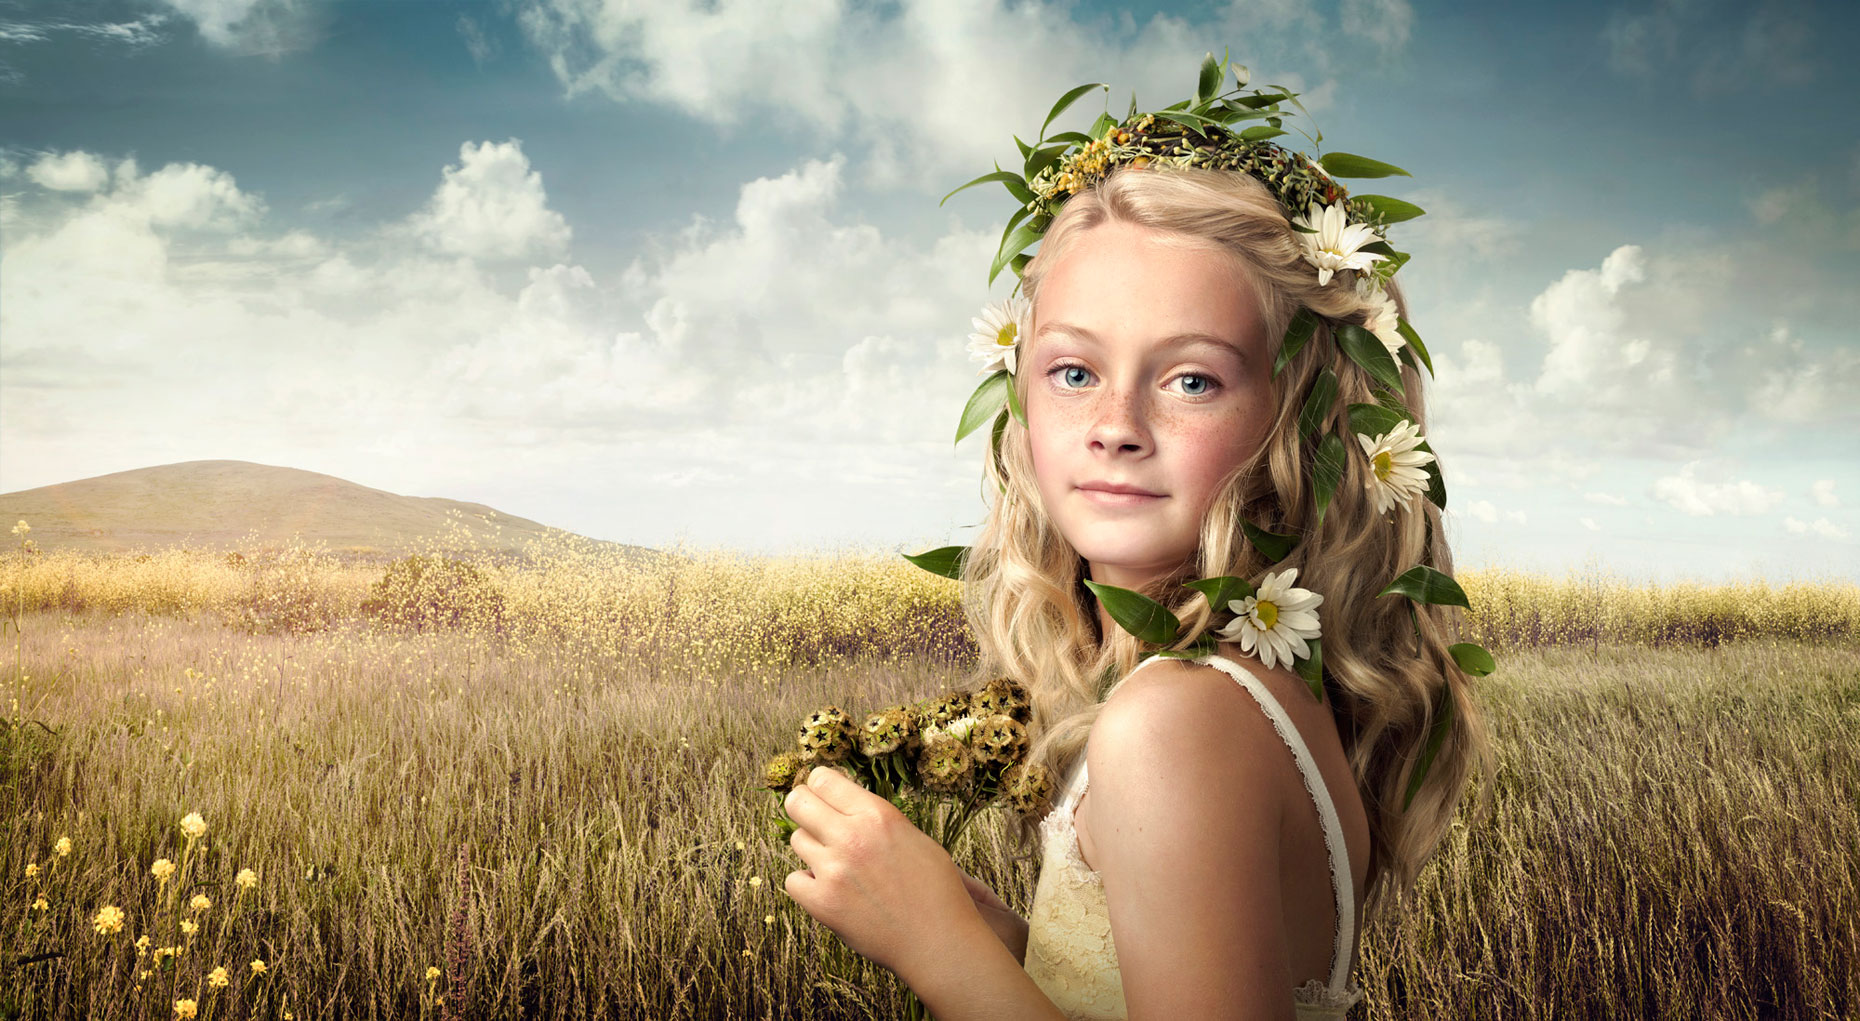 The Flower Girl - Composite Image